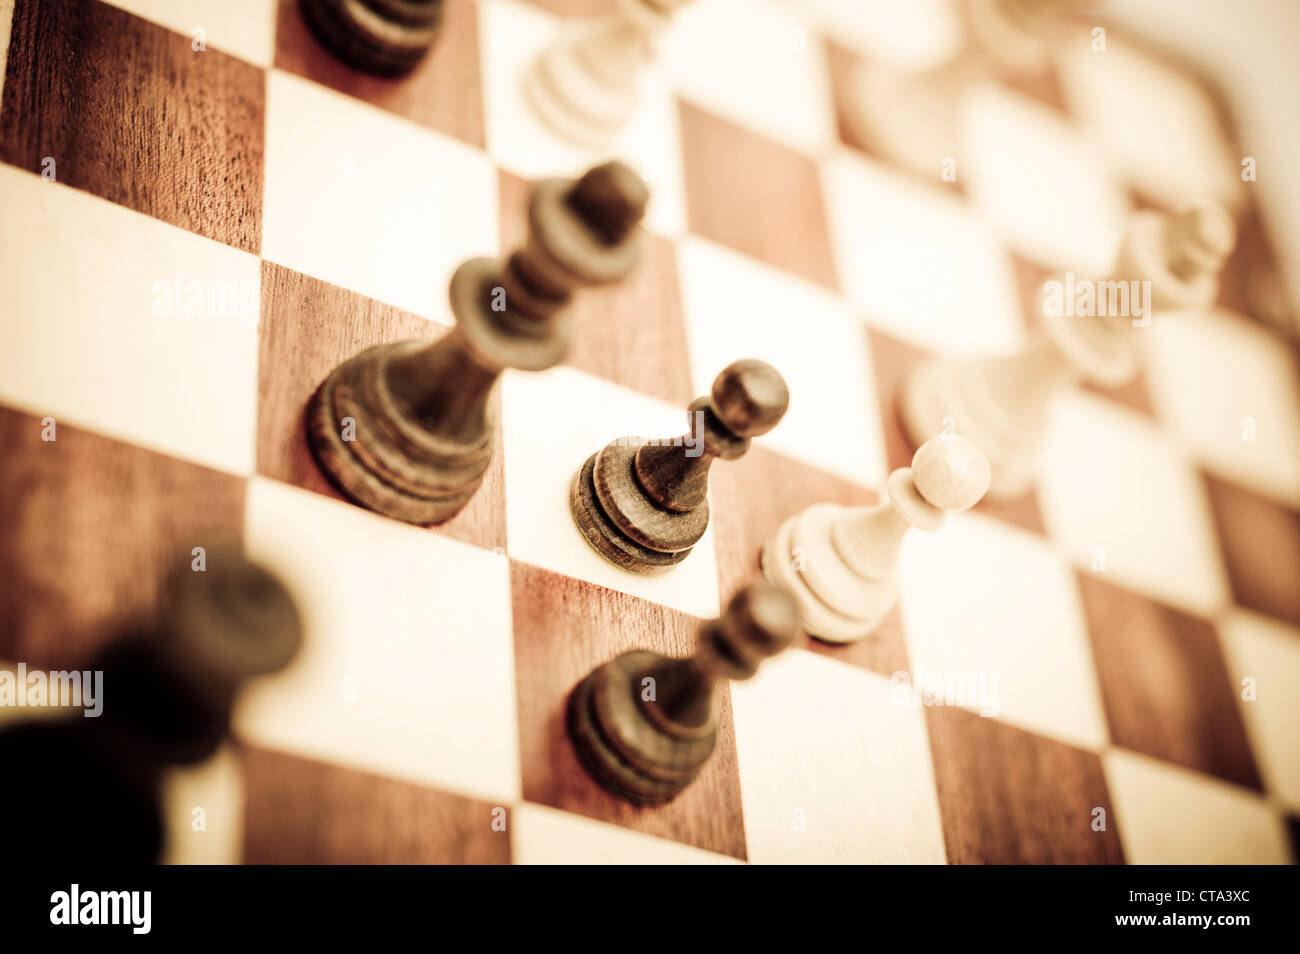 chess game focus on kings and pawns - Stock Image